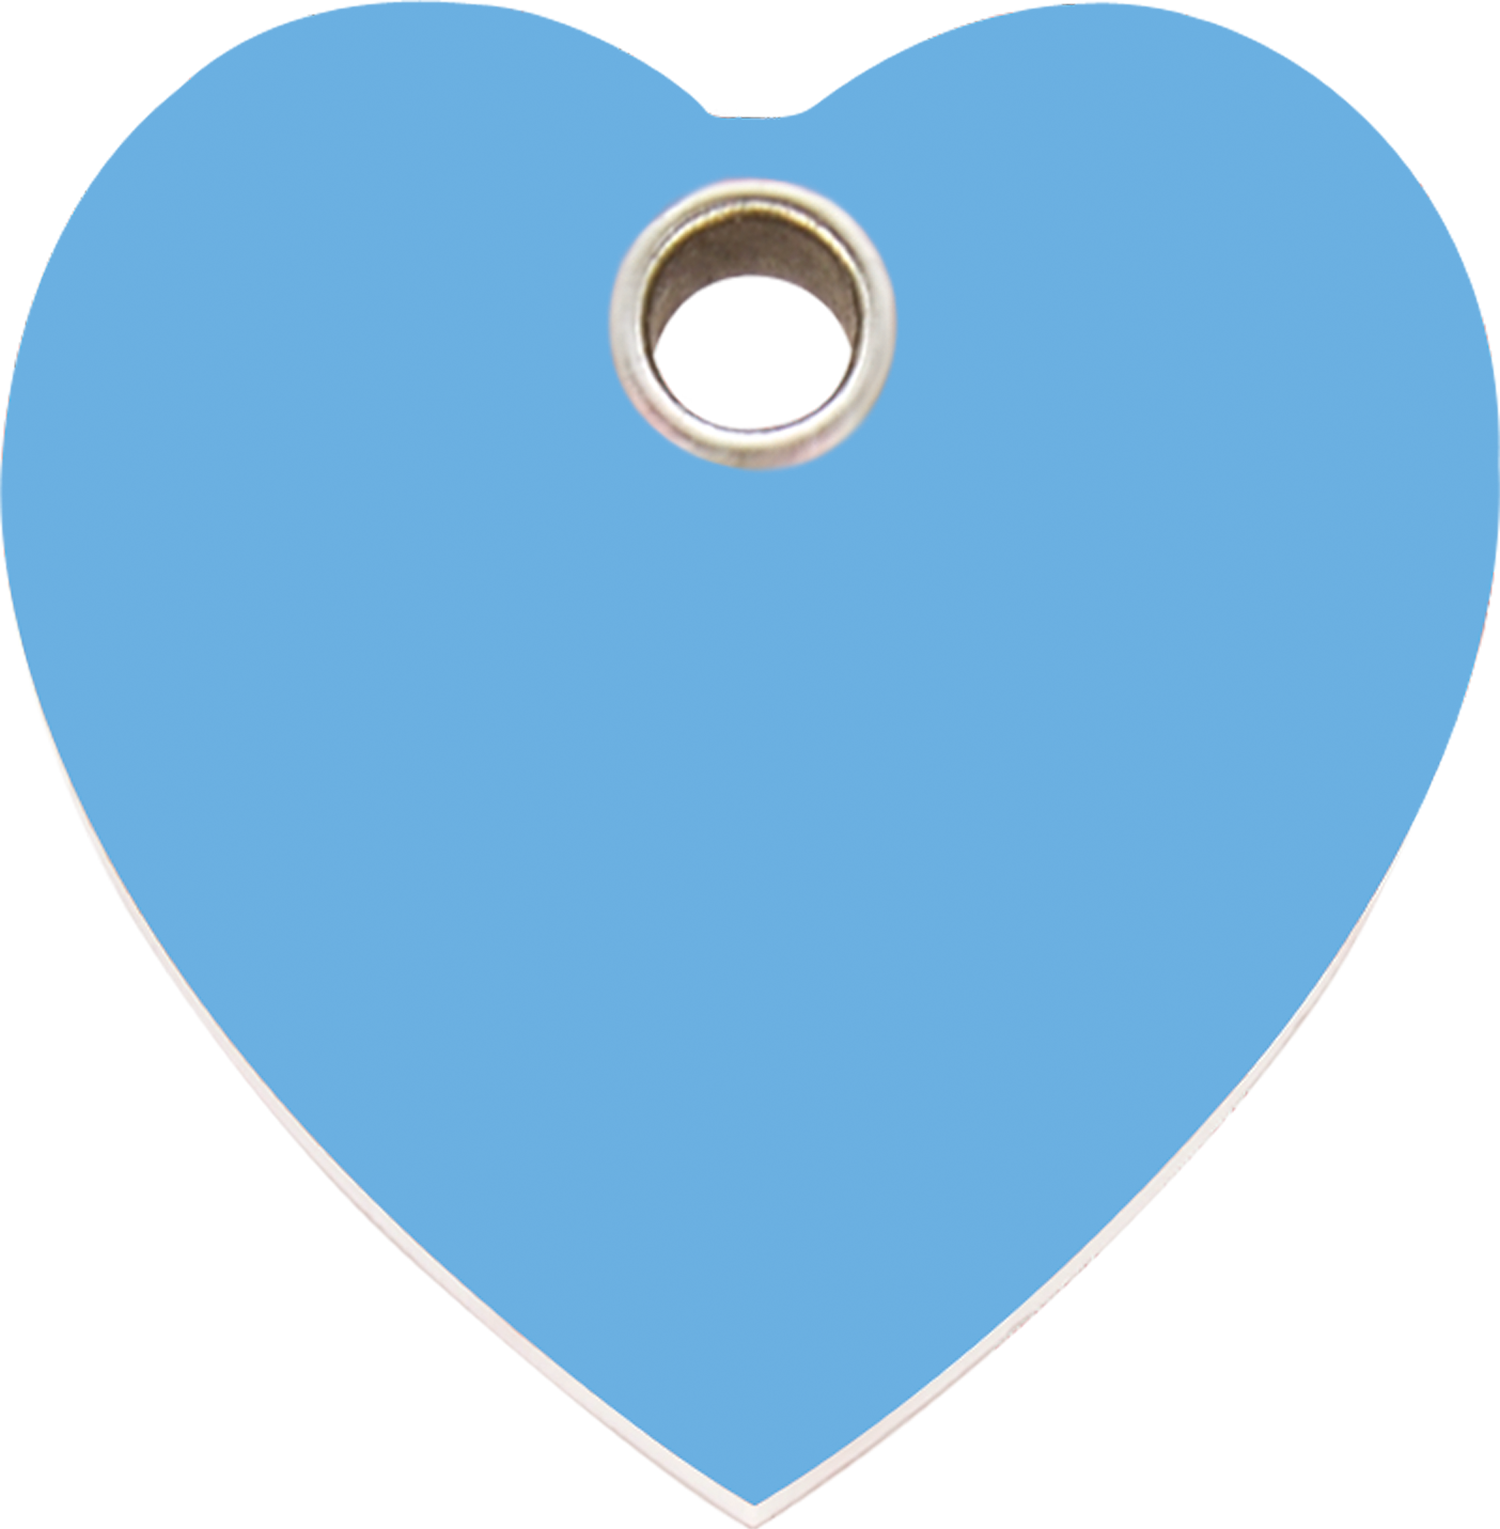 Light Blue clipart turquoise heart HT (4HTLBS LB Red